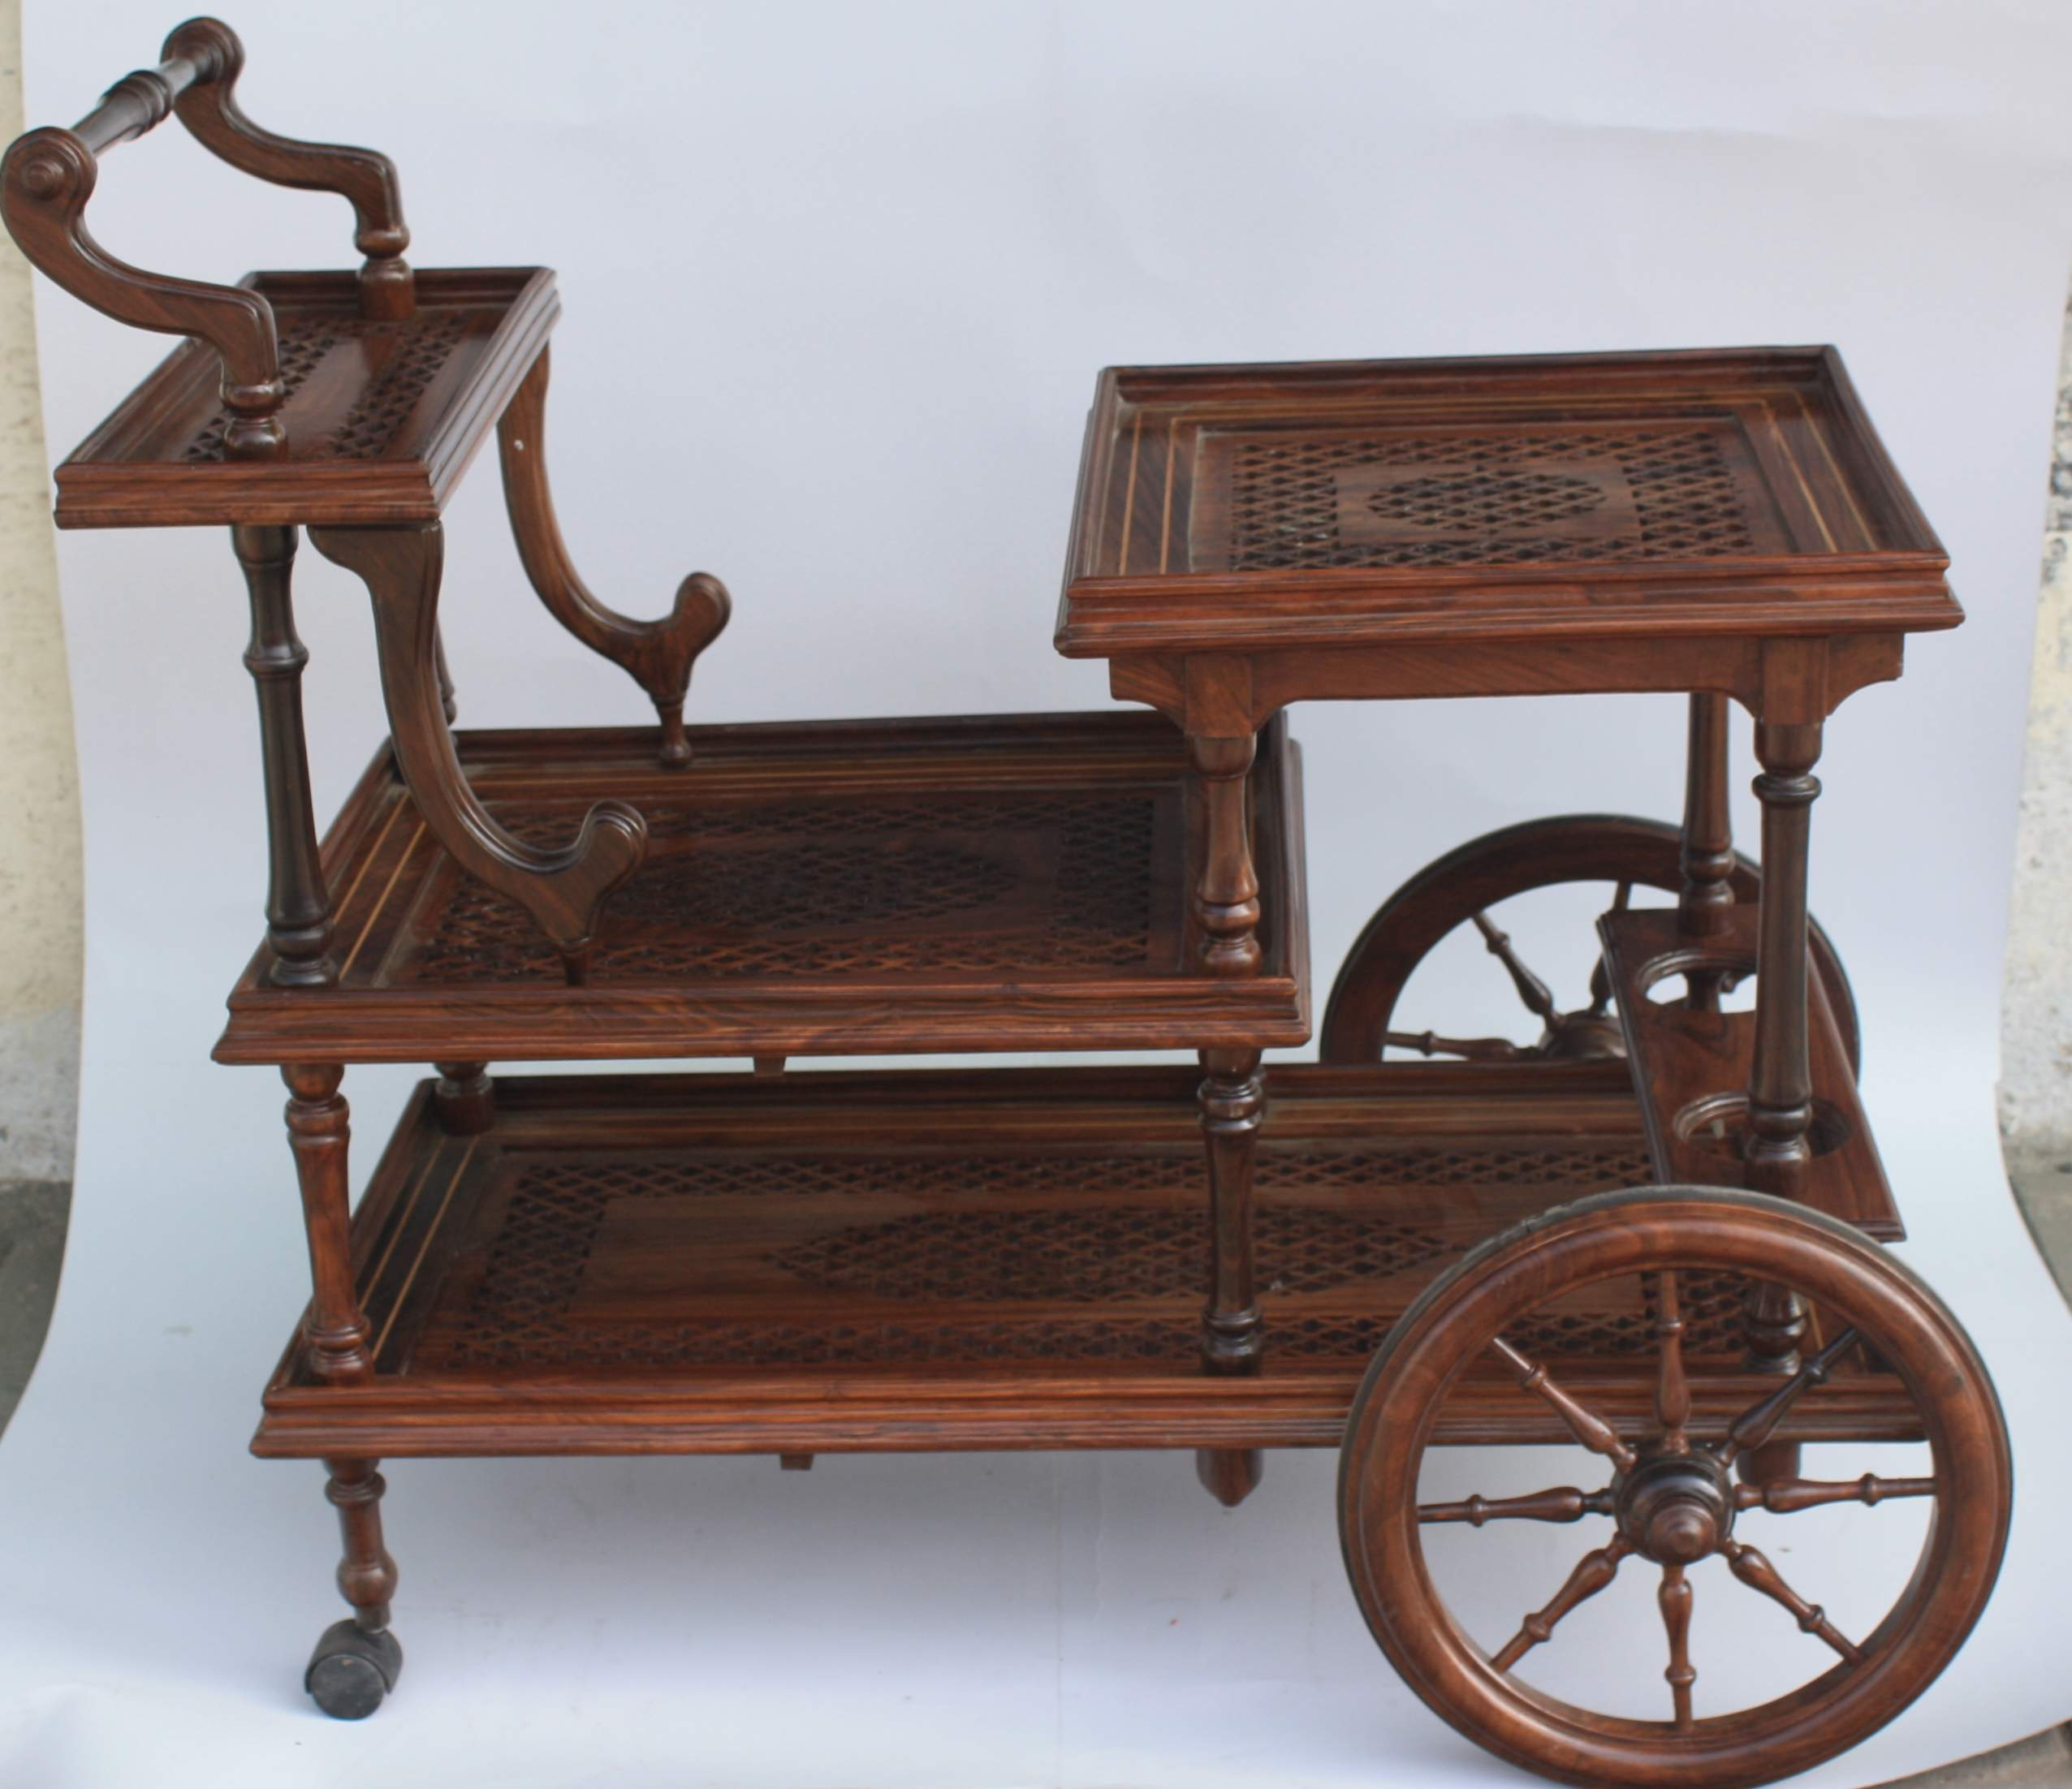 Antique Tea Trolley Carving Tea Carthandmade Carved Trolleyserving Wooden Food Trolley Buy Kids Tea Trolleyantique Wooden Serving Trolleyantique